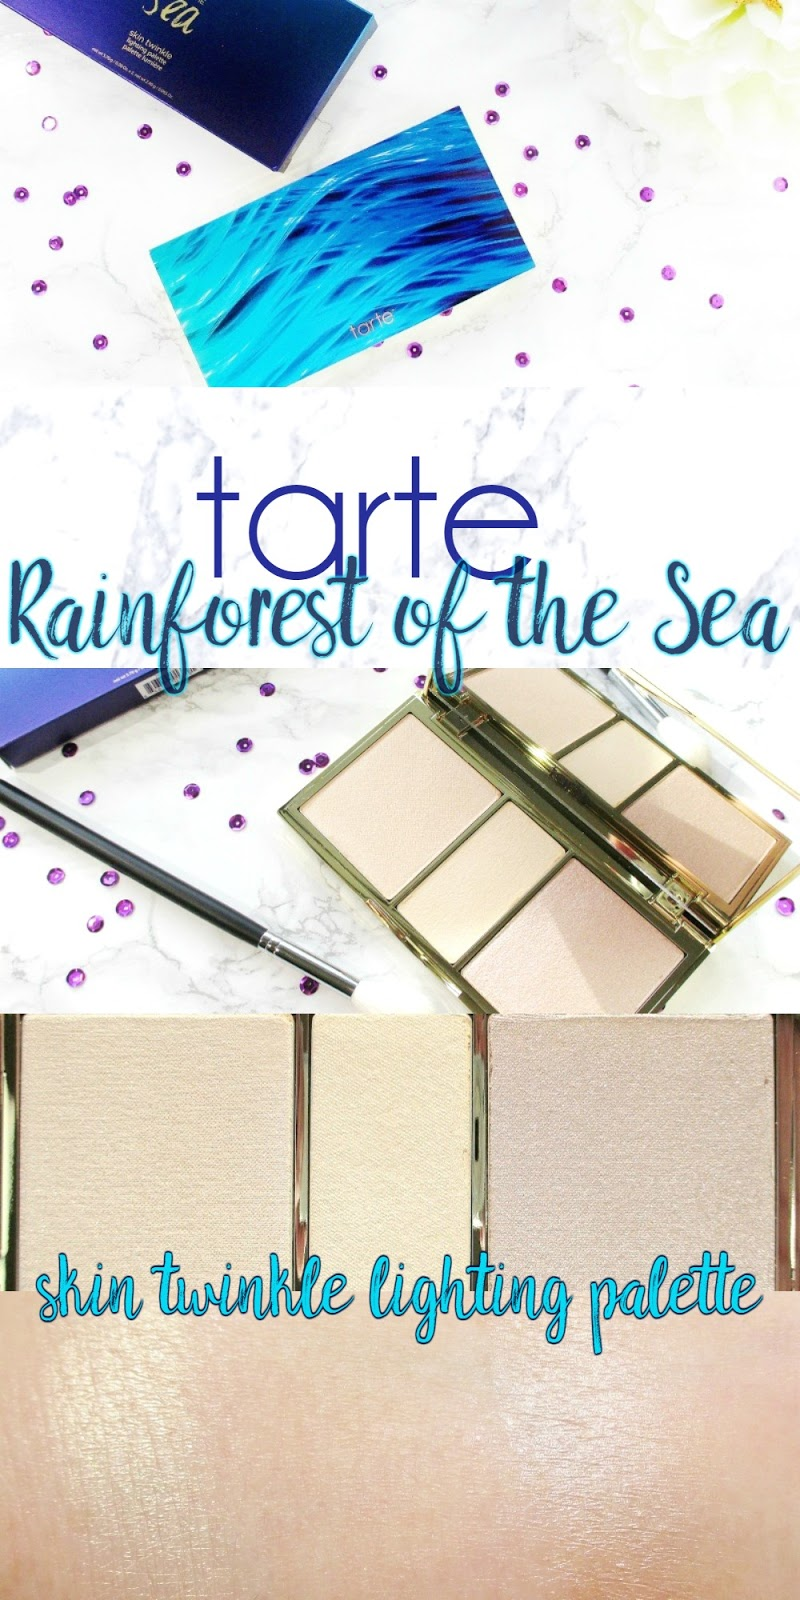 tarte-skin-twinkle-lighting-palette-4